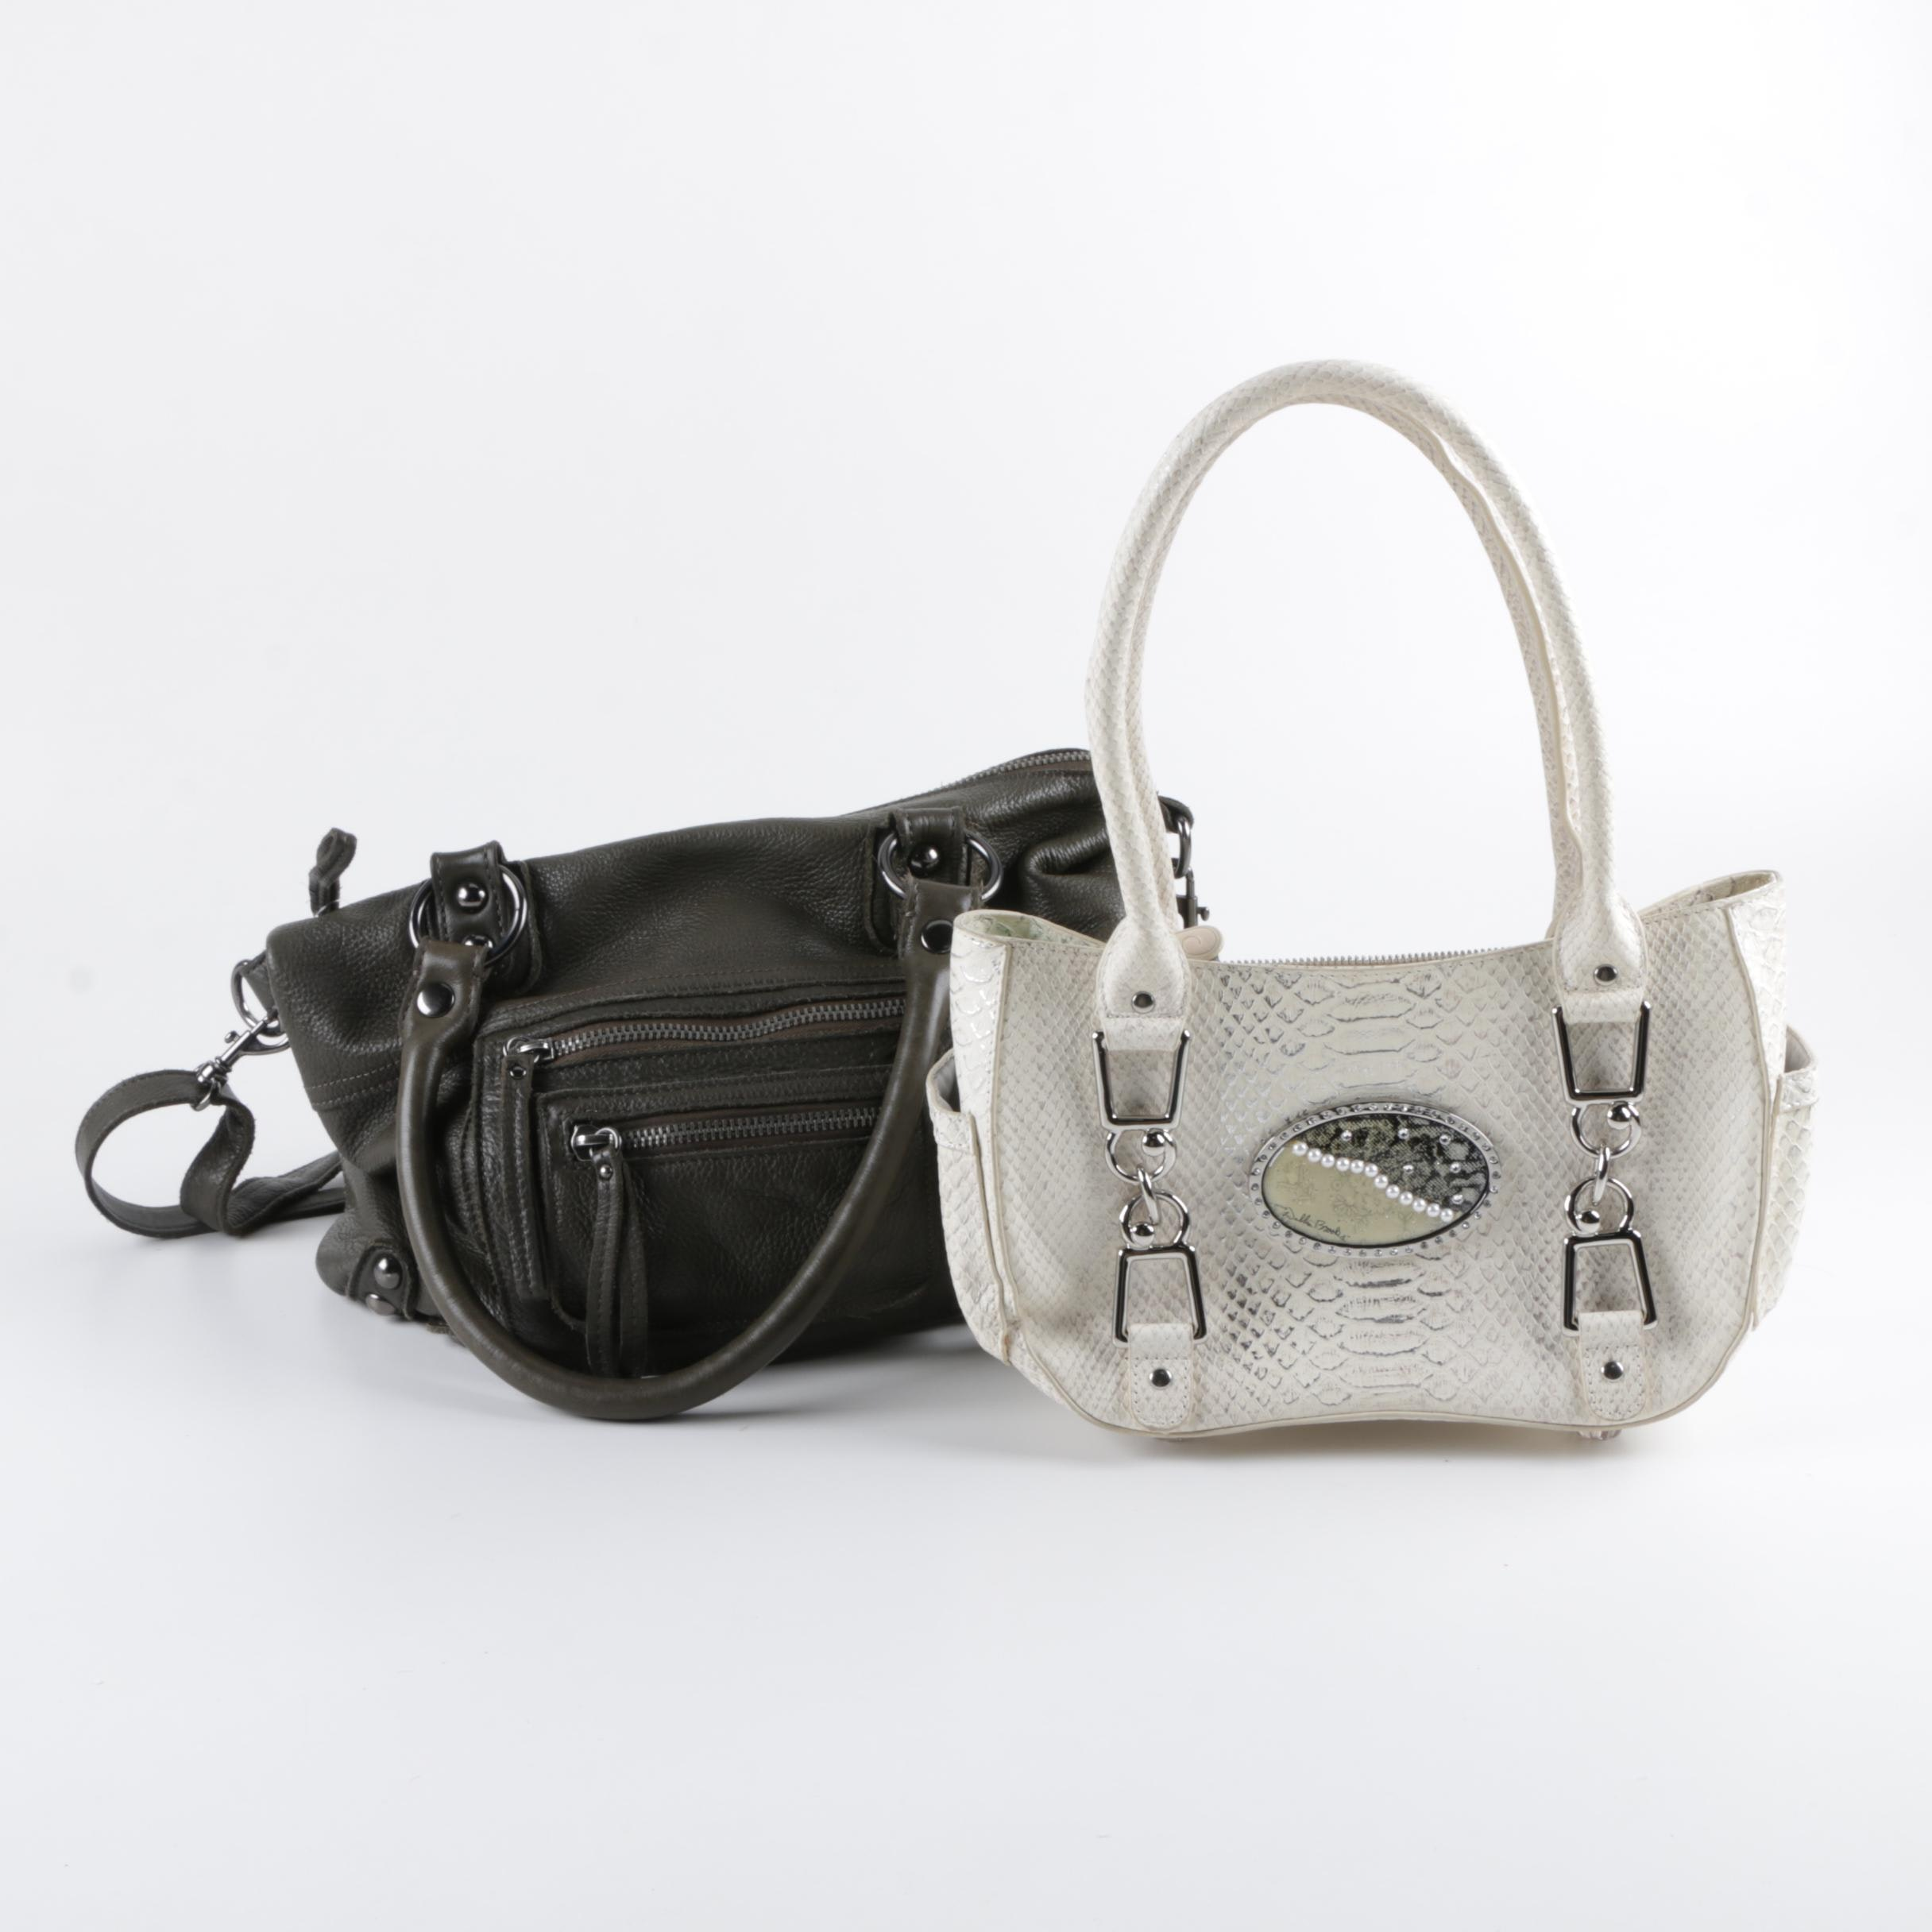 Linea Pelle Collection and Debbie Brooks of New York Leather Handbags